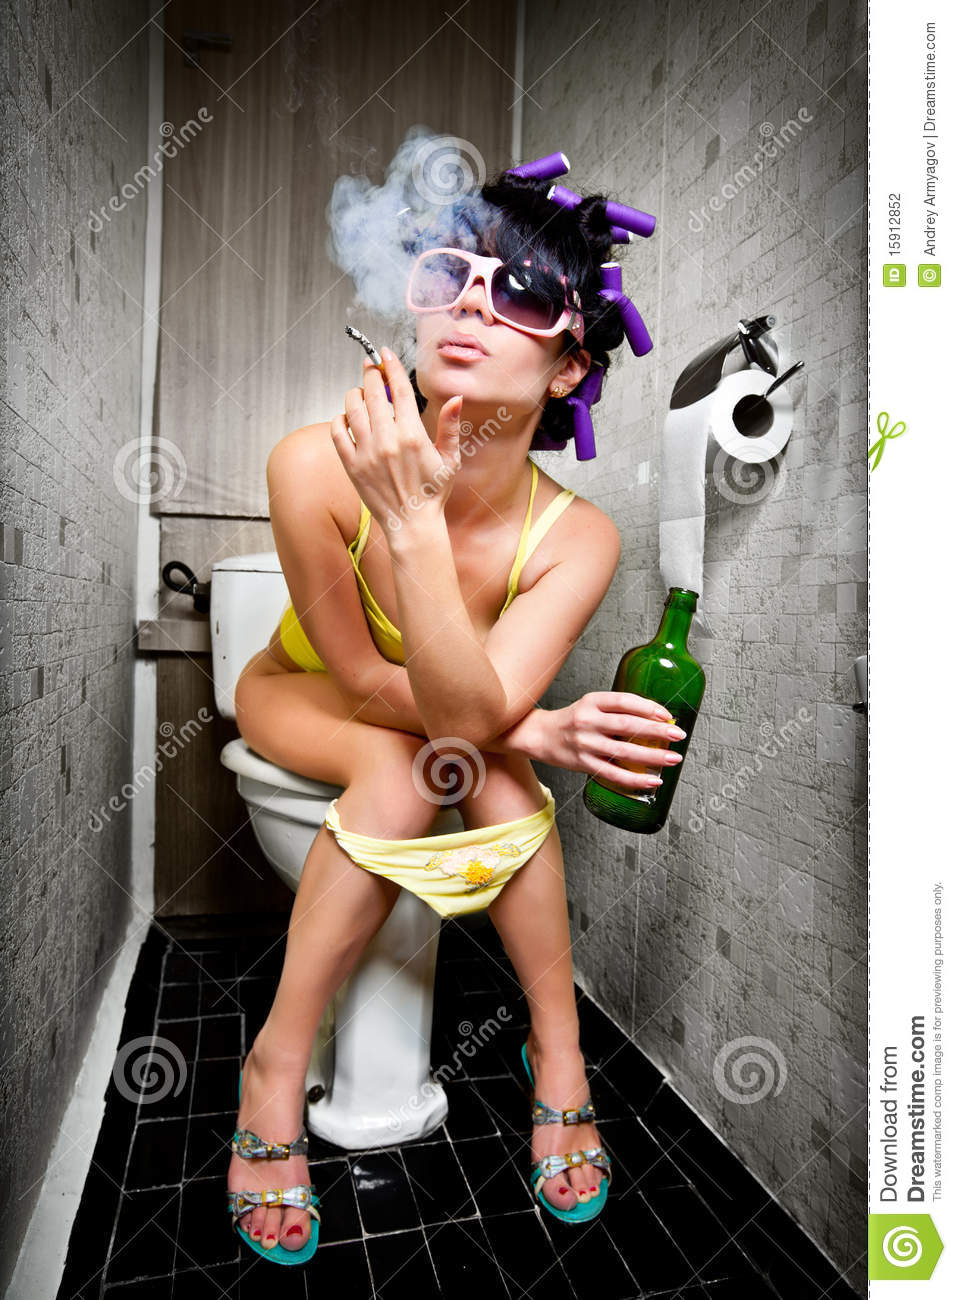 Girl sits in a toilet